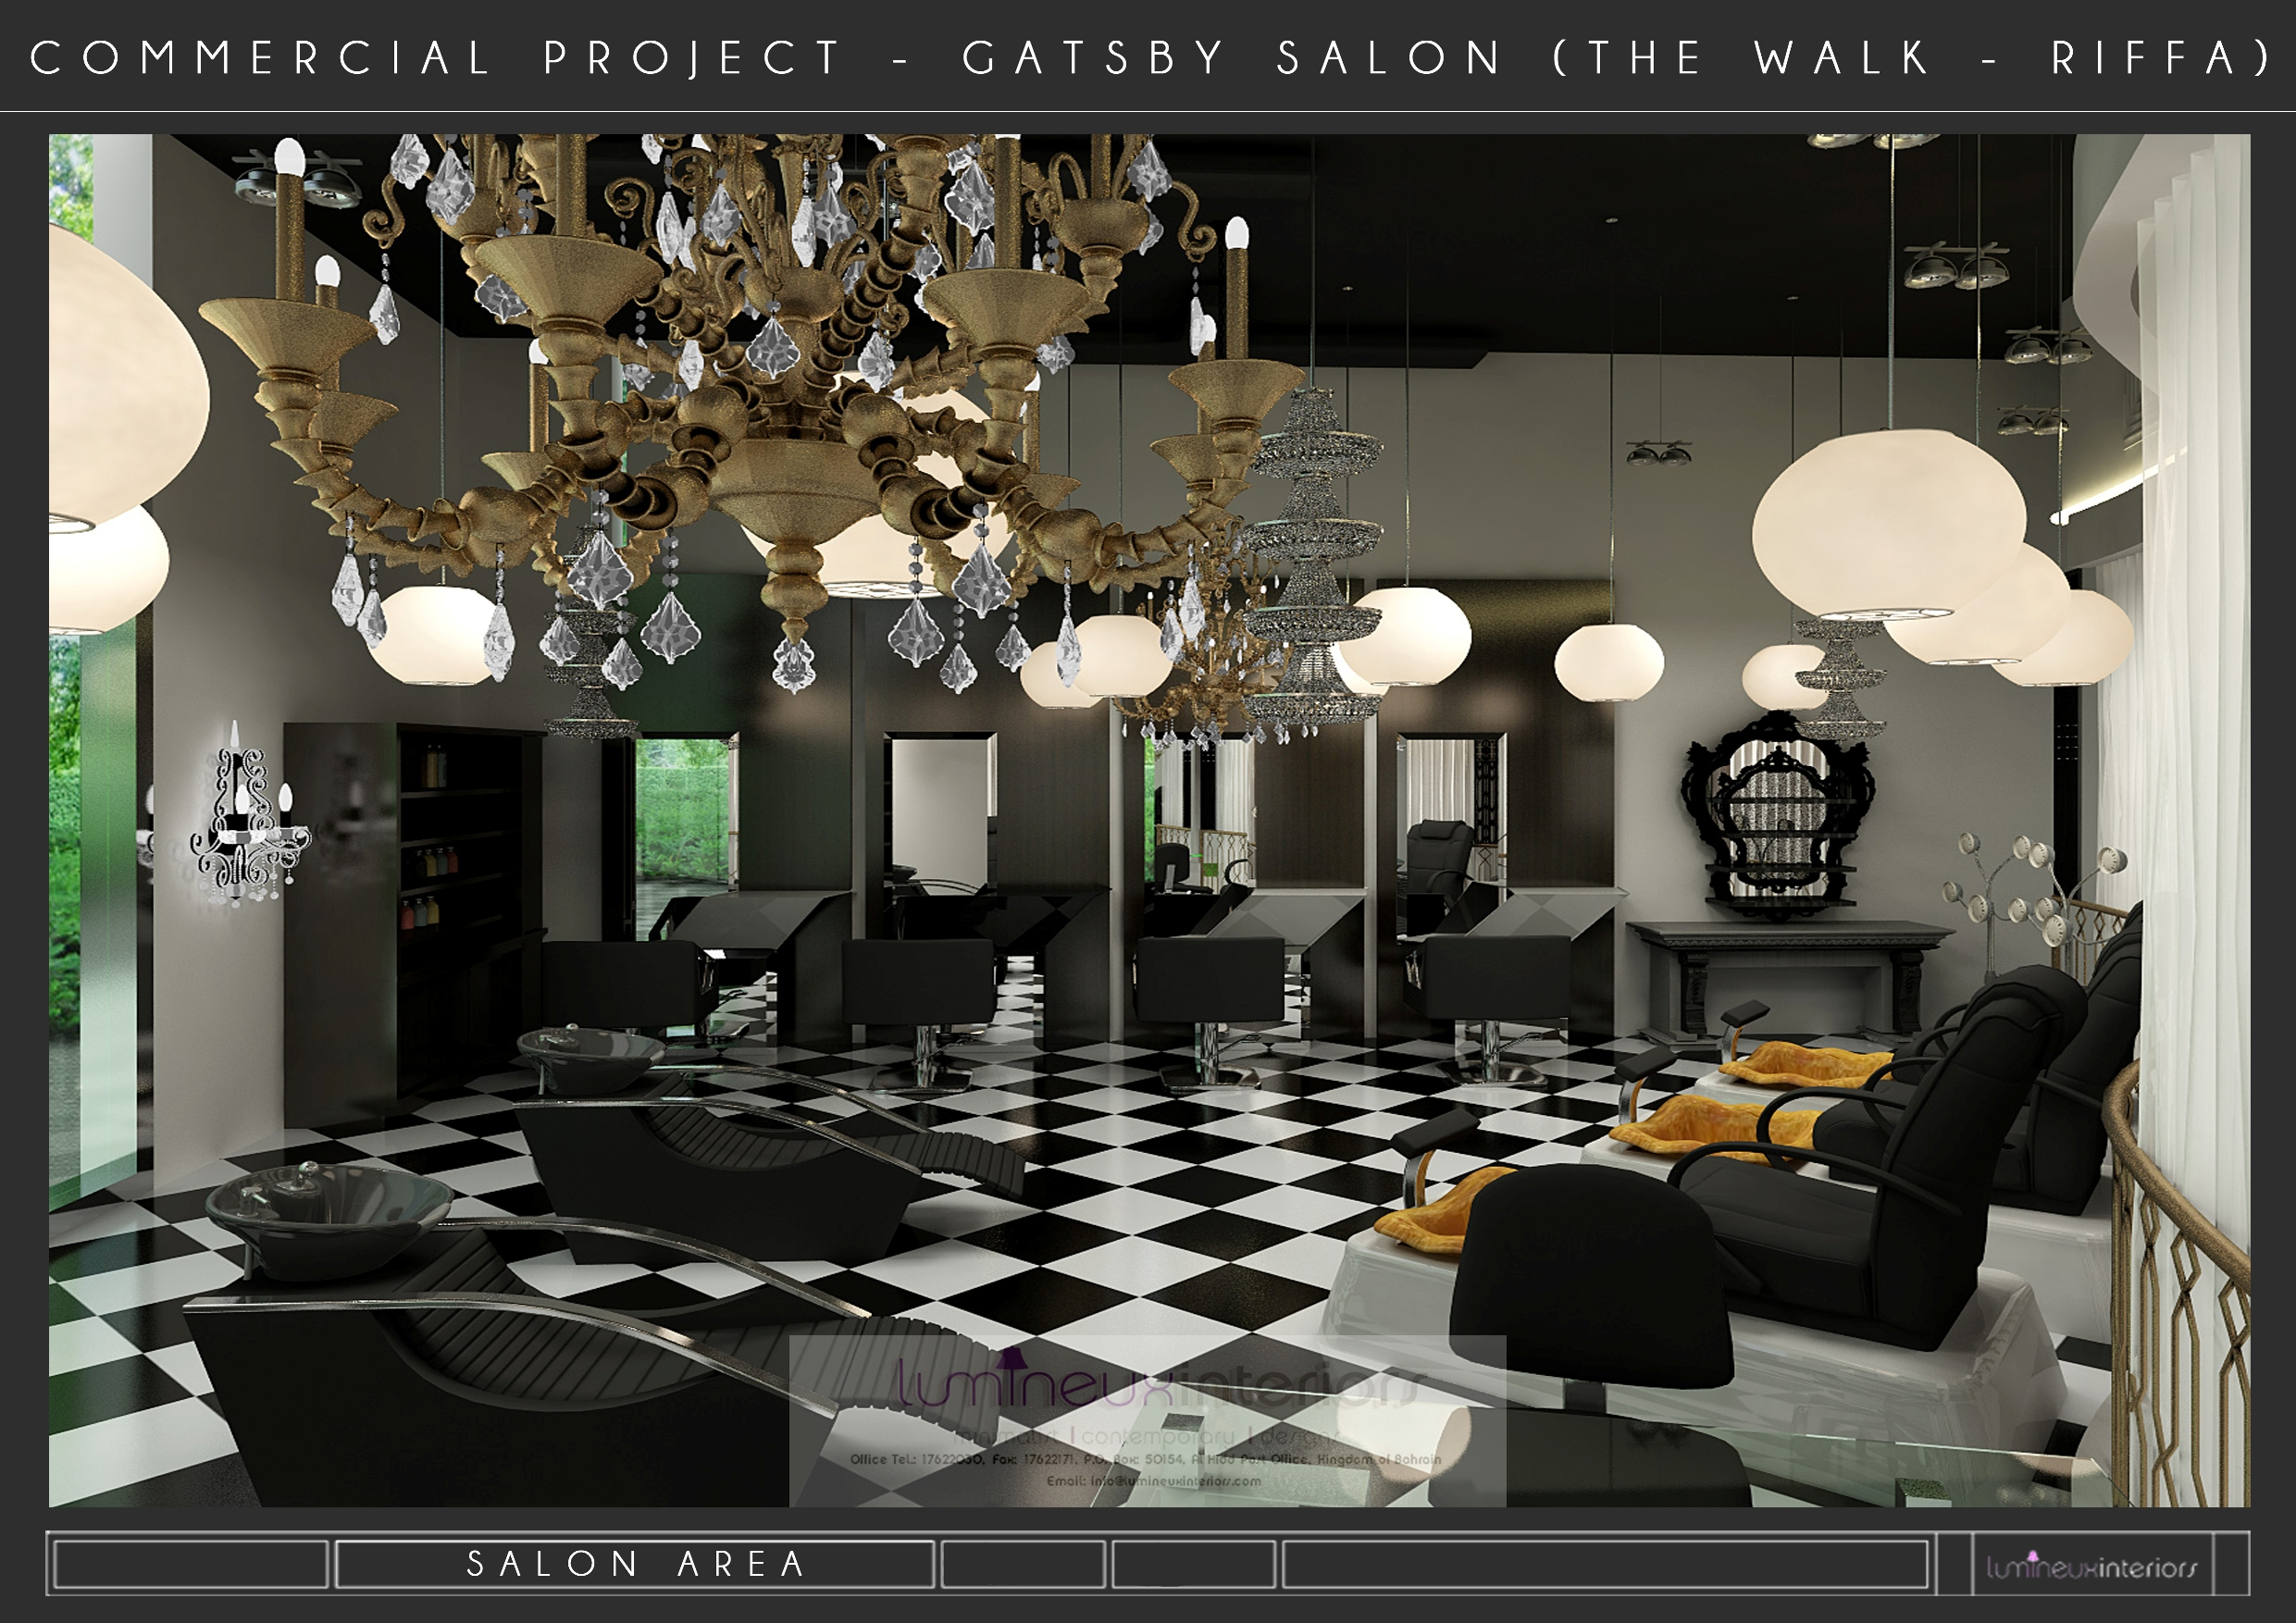 Gatsby Salon (THE WALK – RIFFA)